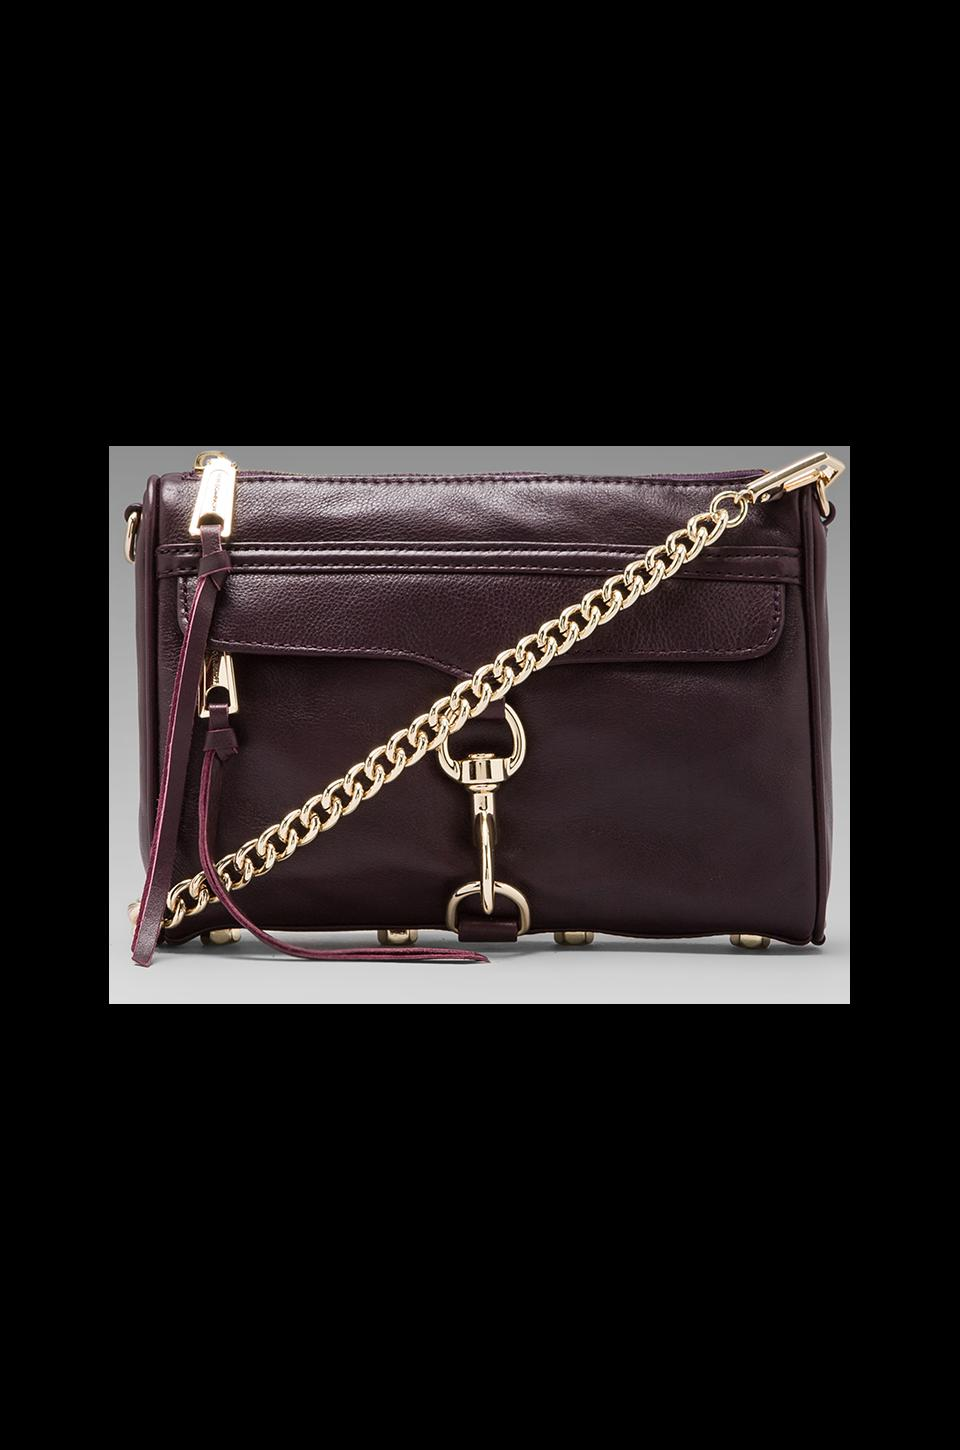 Rebecca Minkoff Mini Mac in Black Cherry